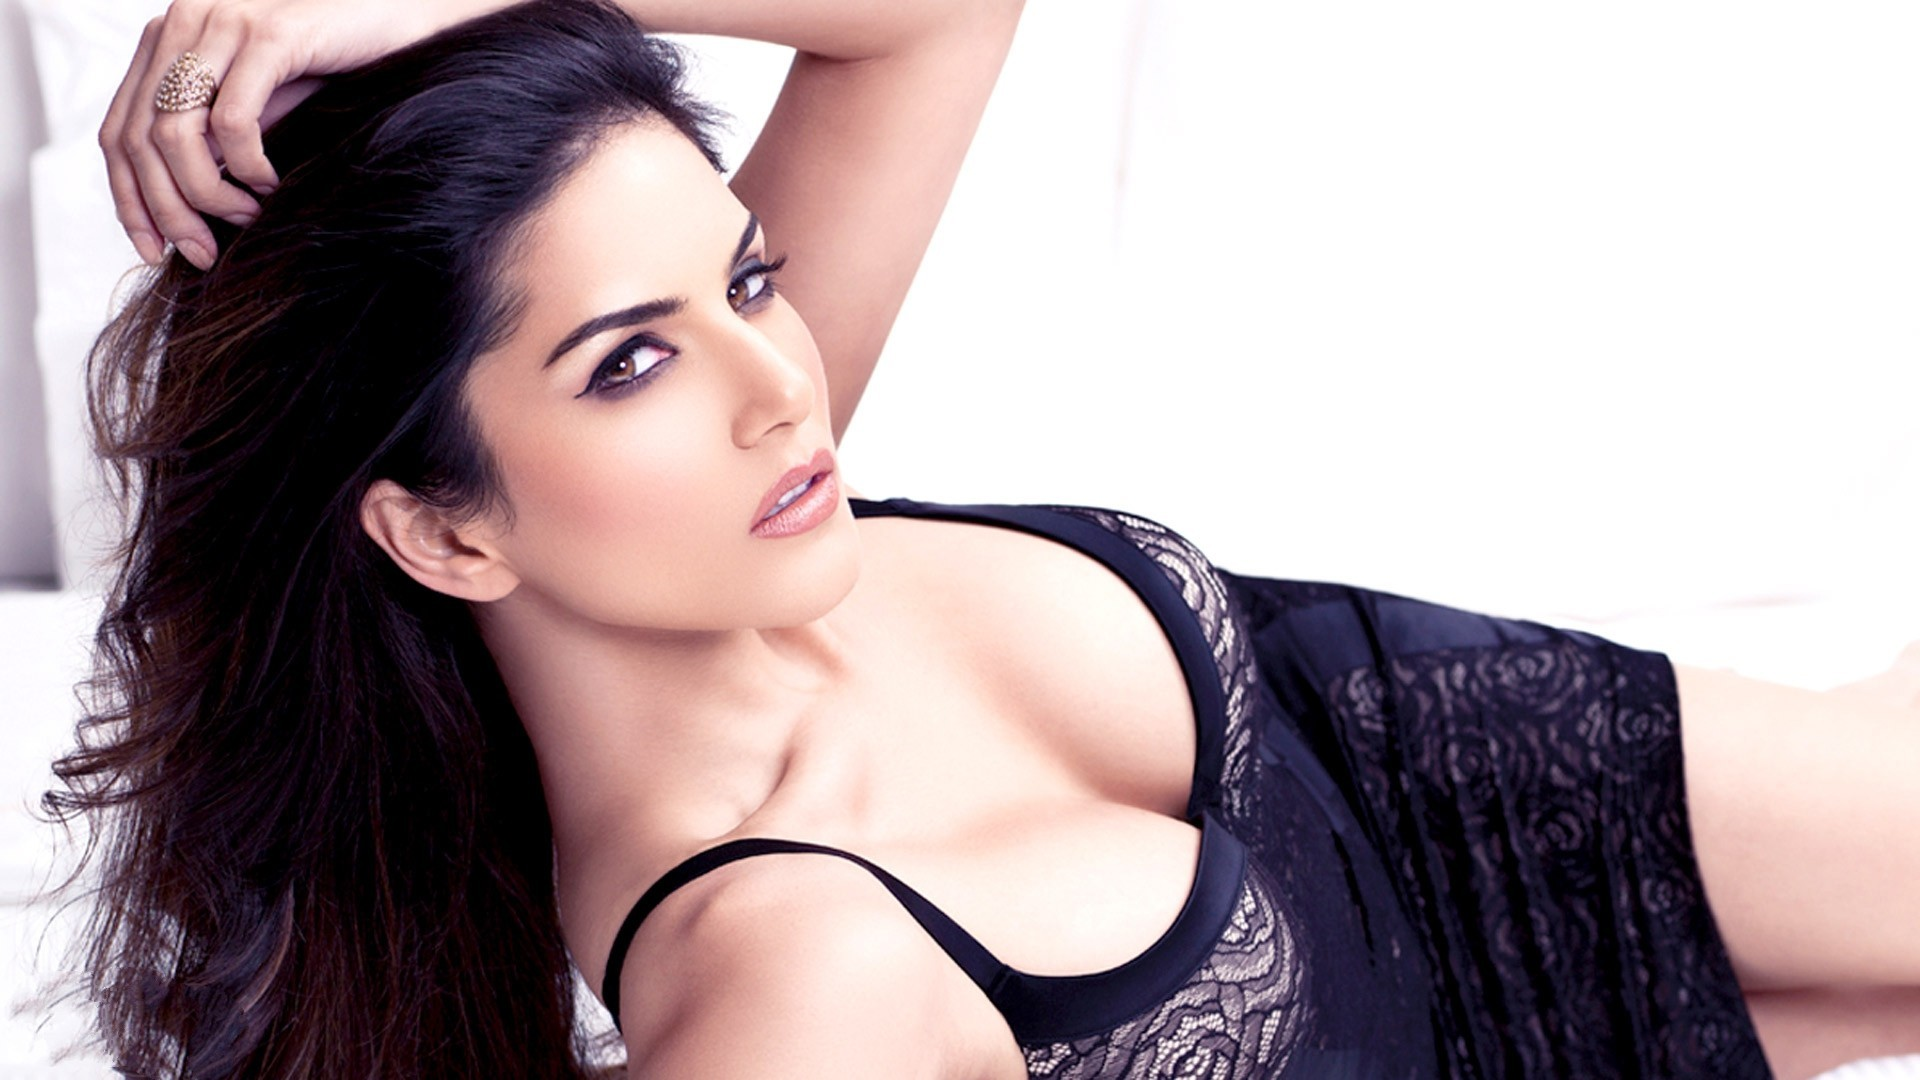 Sunny Leone HD Wallpapers - live wallpaper HD Desktop Wallpapers